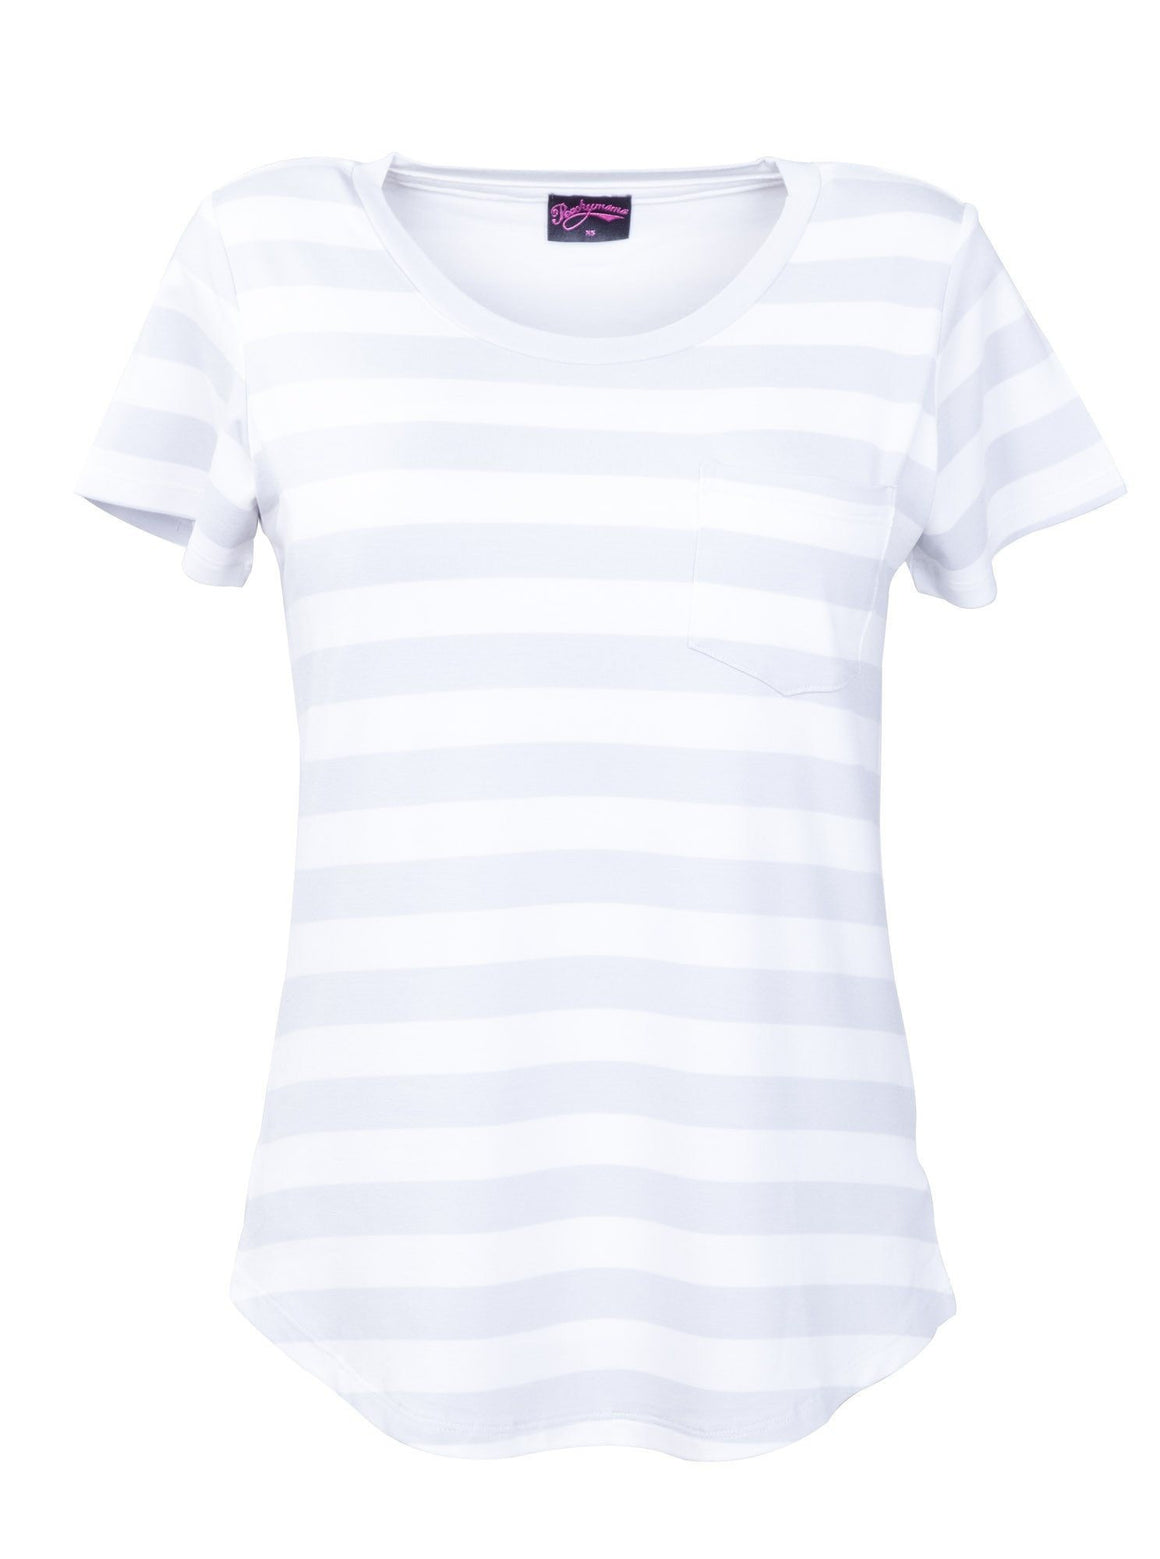 Breastfeeding T Shirt in Grey and White Stripe